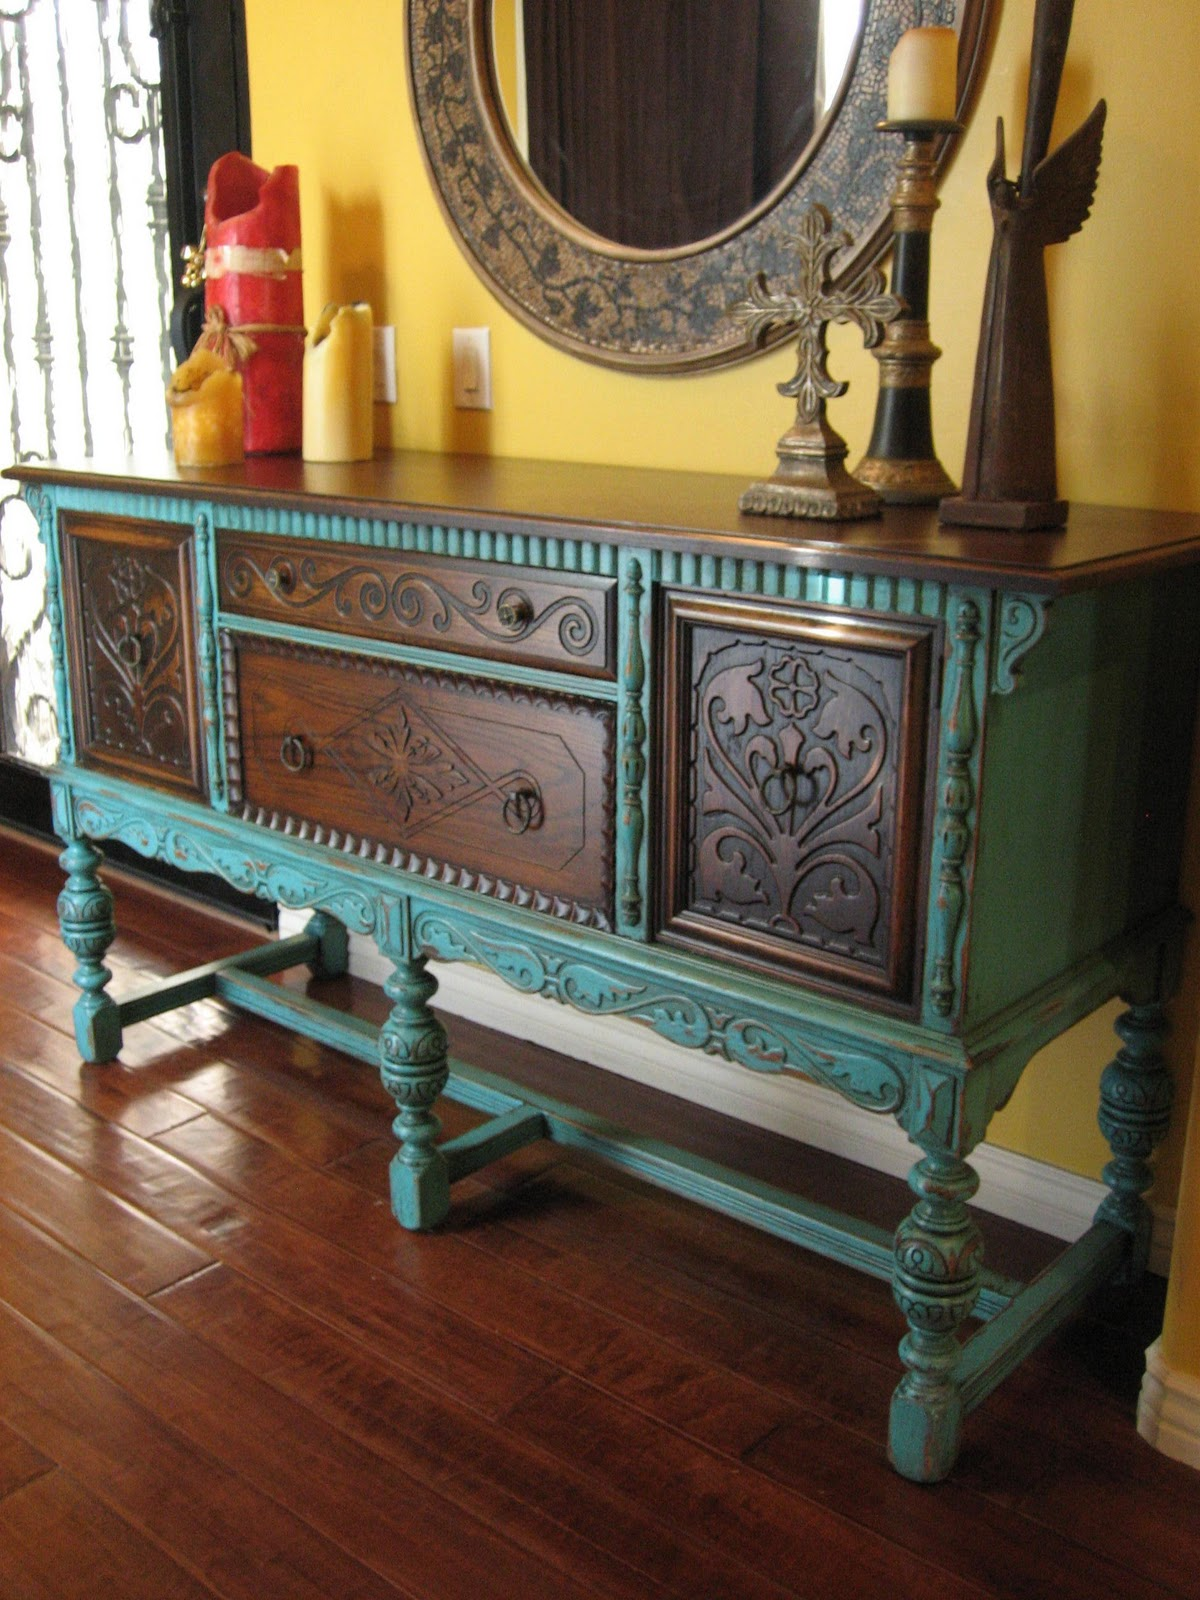 European Paint Finishes Old World European Sideboard : BUFFET TEAL141 from europaintfinishes.blogspot.com size 1200 x 1600 jpeg 326kB